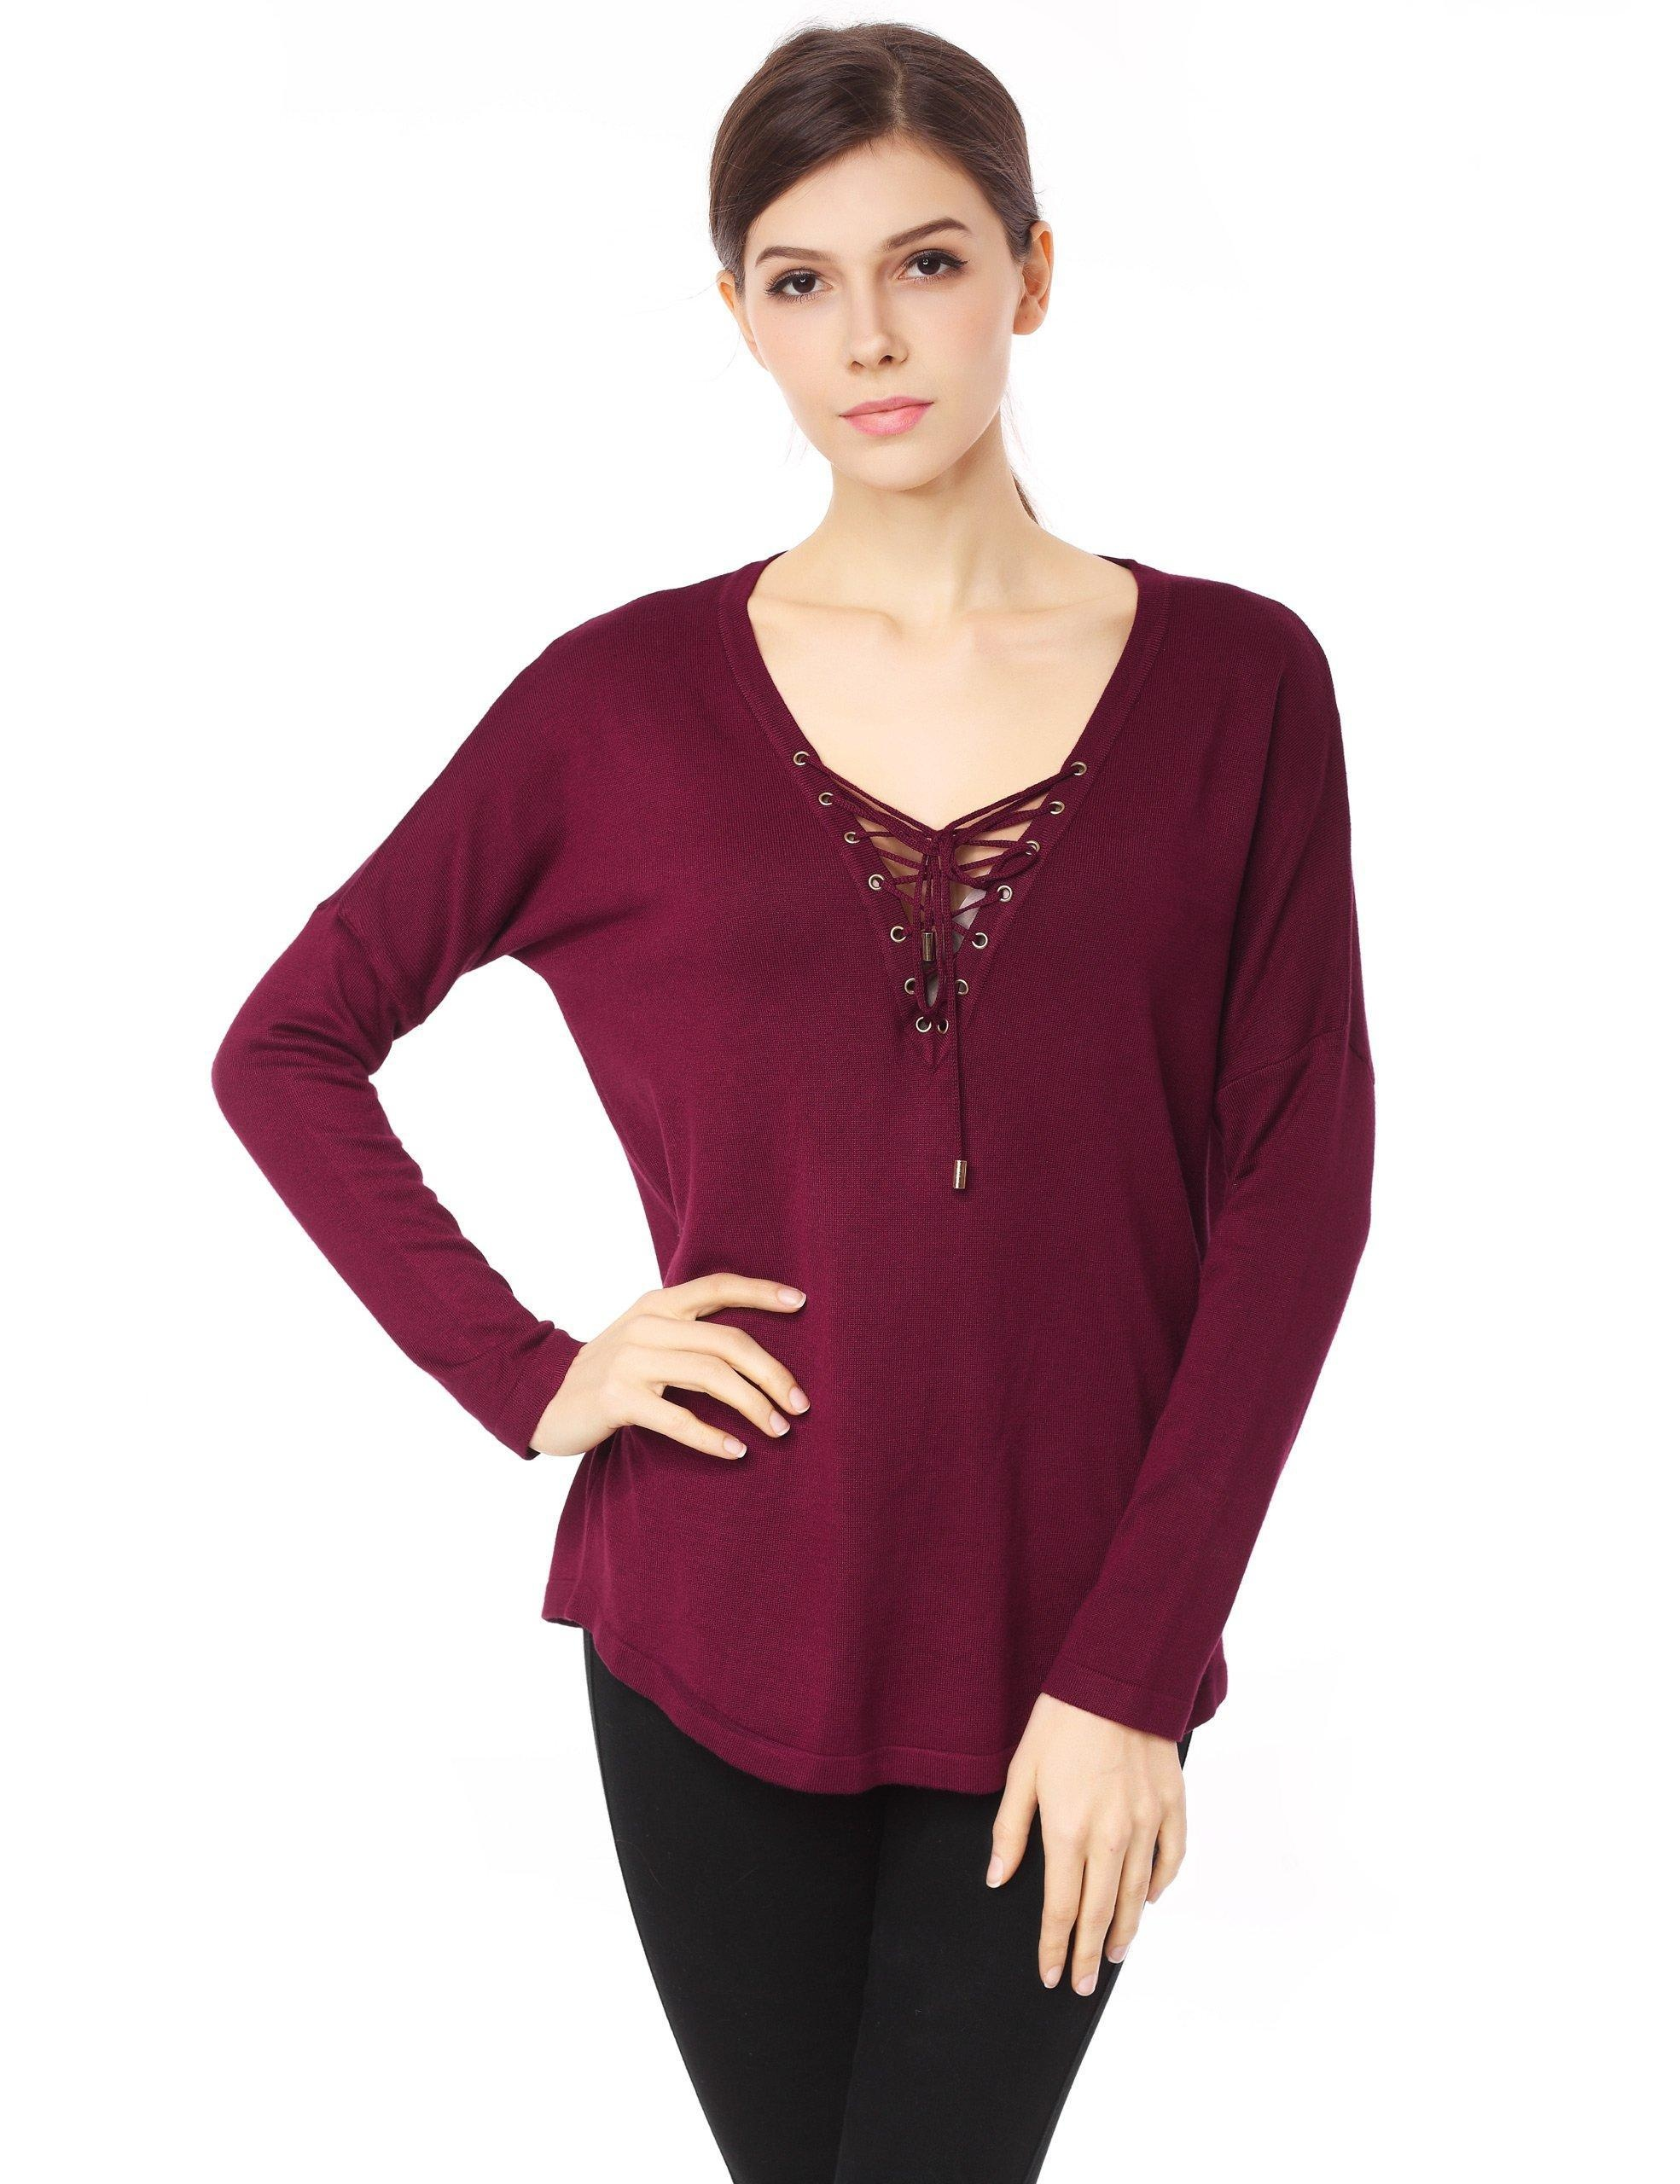 ZLYC Women's Sexy Casual Cross Deep V Neck Long Sleeve Blouse Tops Shirt (Dark Red)